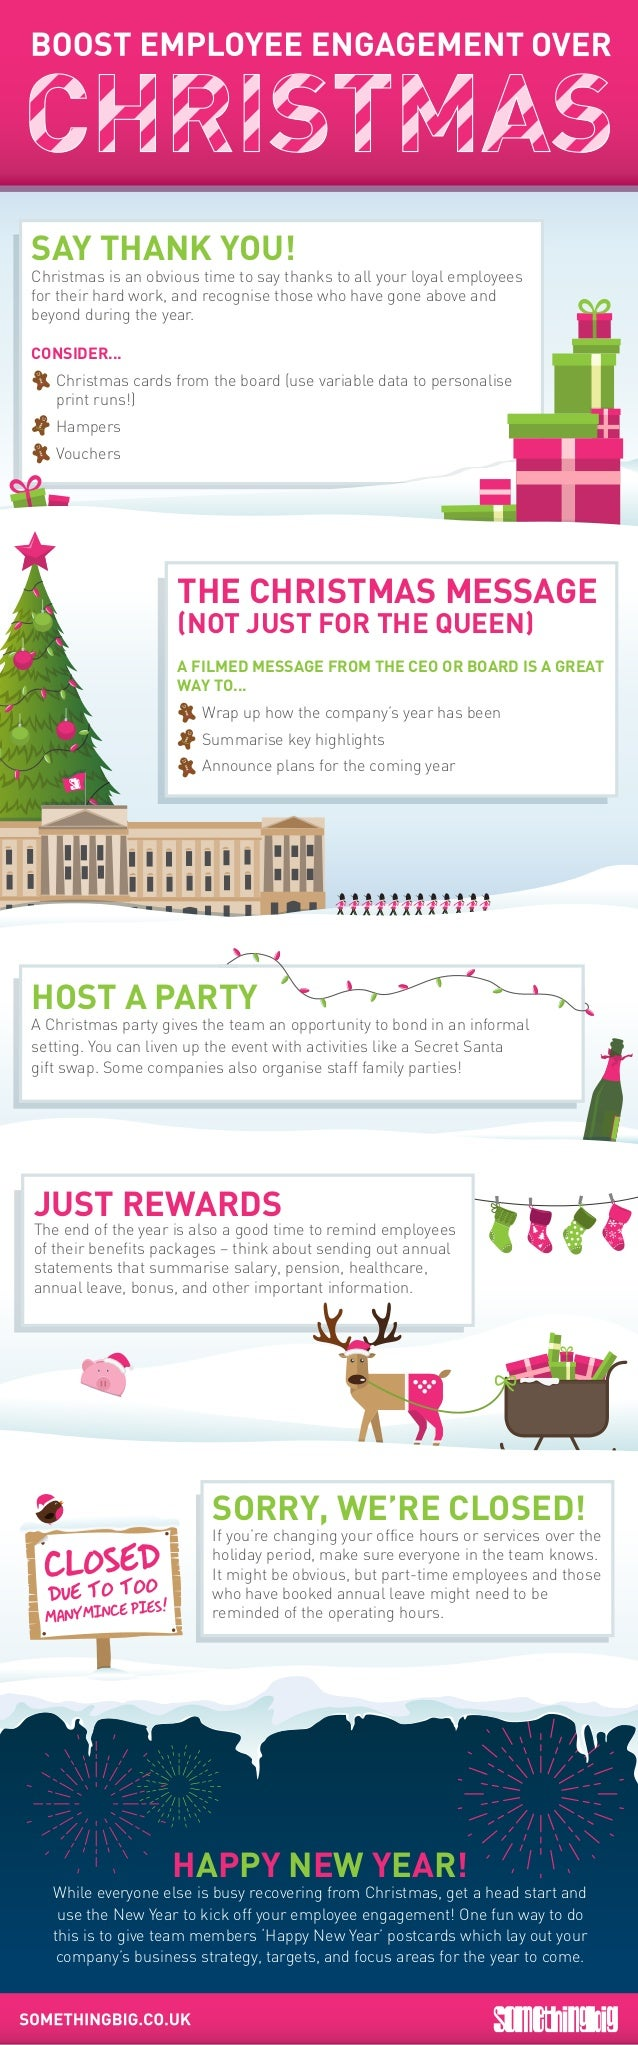 Christmas Message To Employees.Boost Your Internal Comms And Employee Engagement This